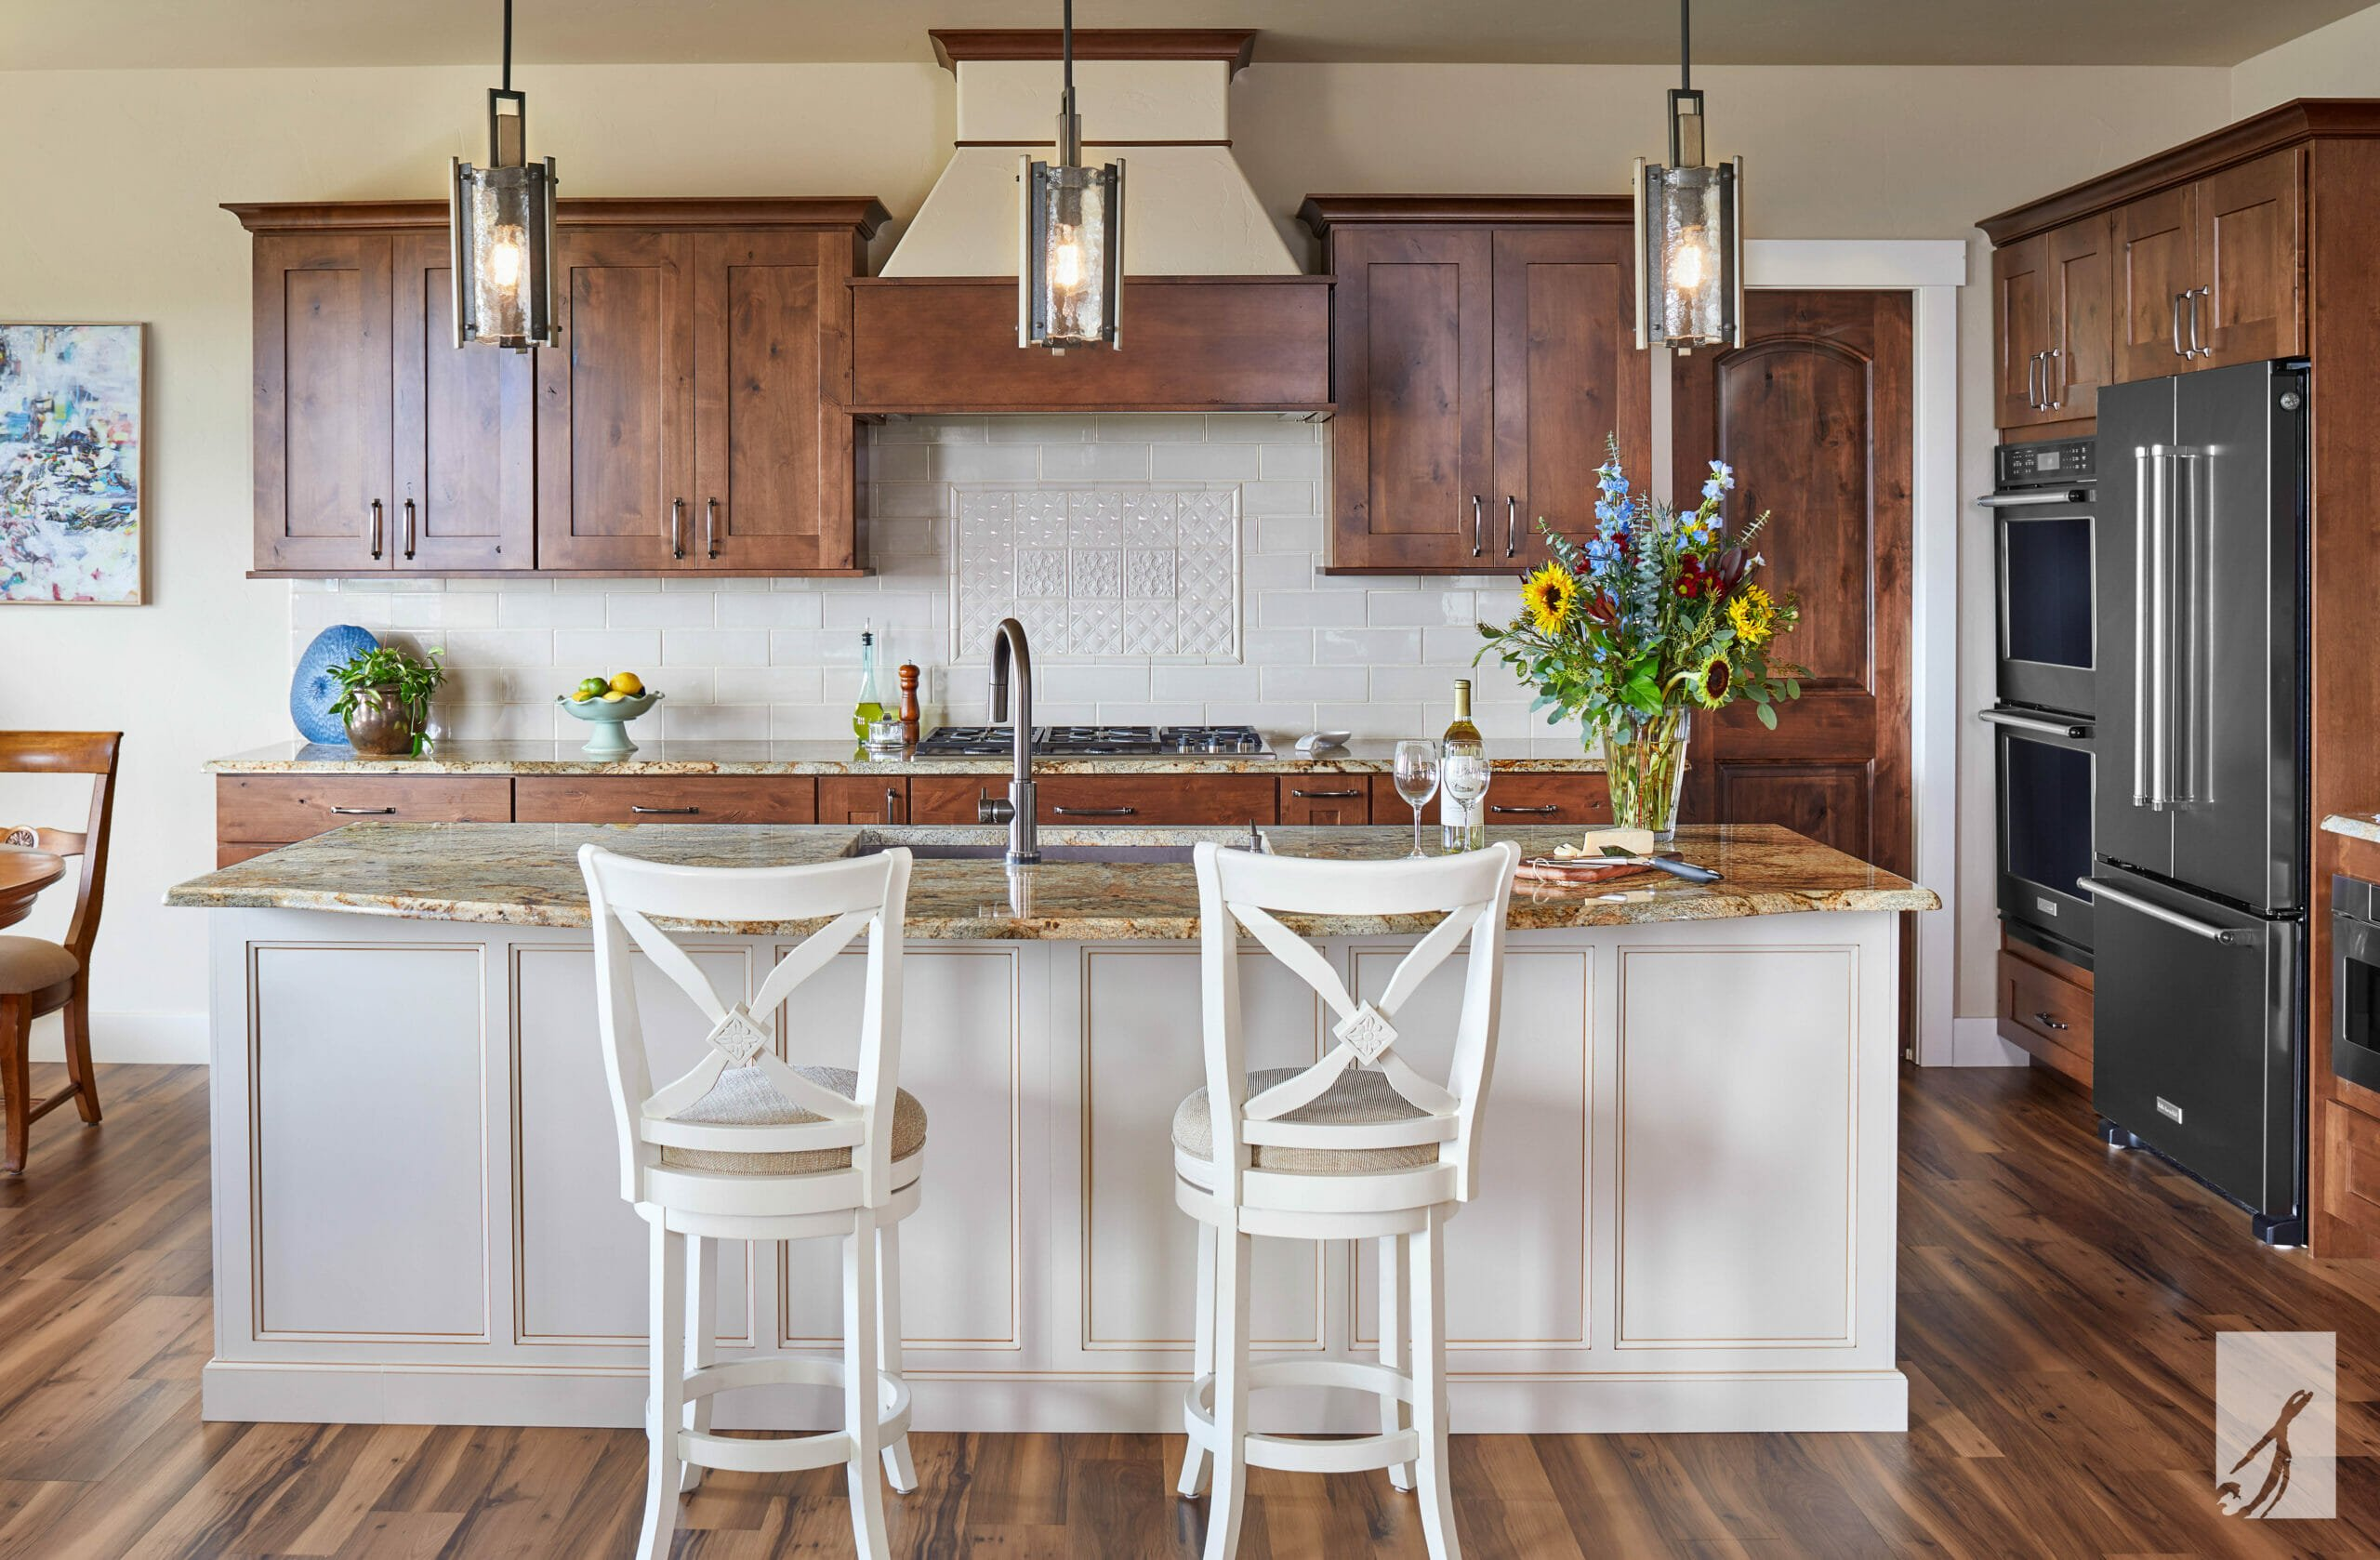 Wooden accent in kitchen interior design Colorado Springs by Katherine and Courtney Springs